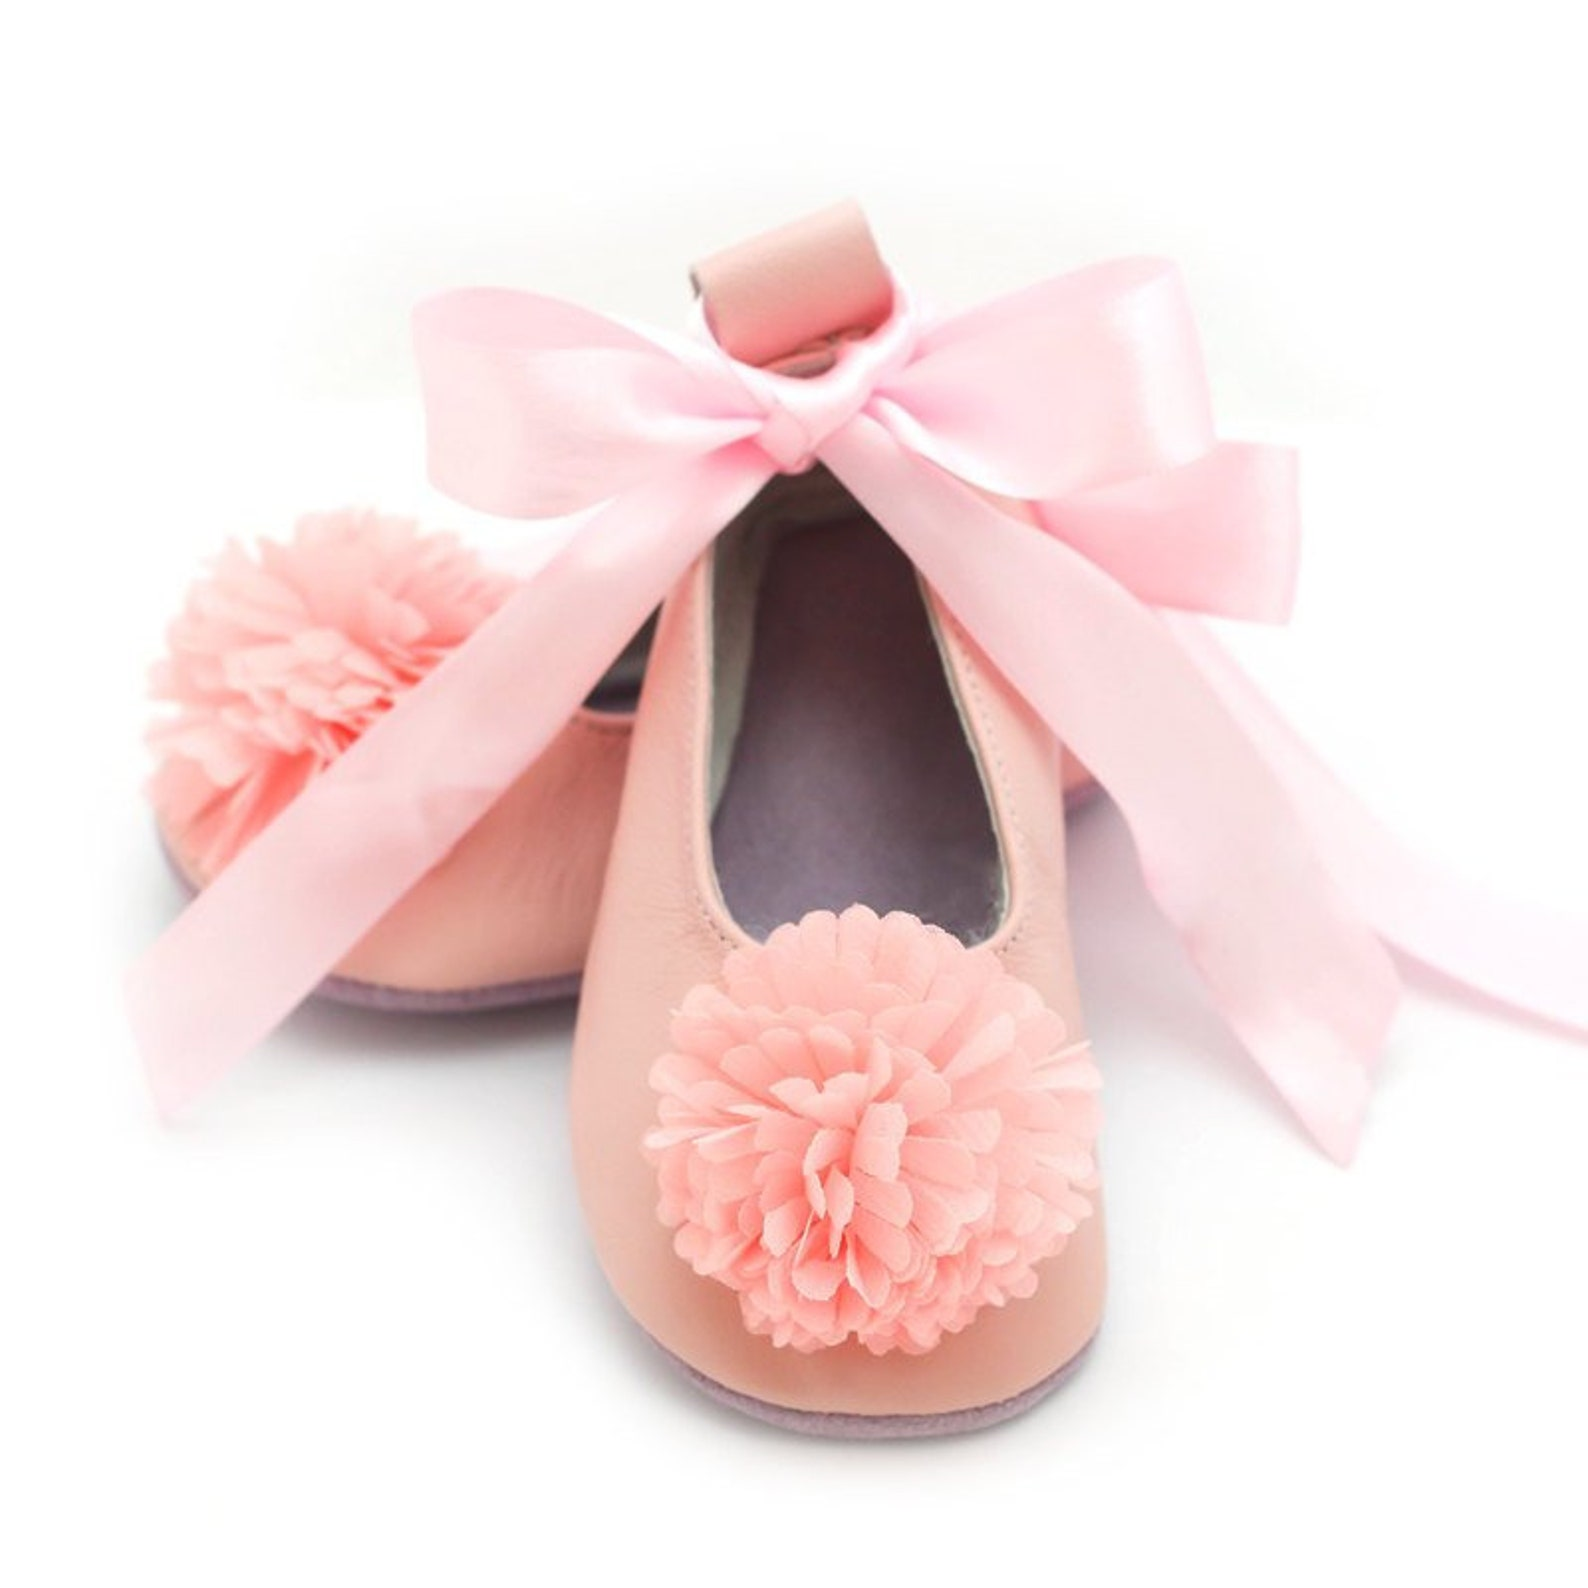 rose quartz flower girl shoes, baby ballet flats, baby shower gift, birthday gift, leather shoes for baby and toddler girls